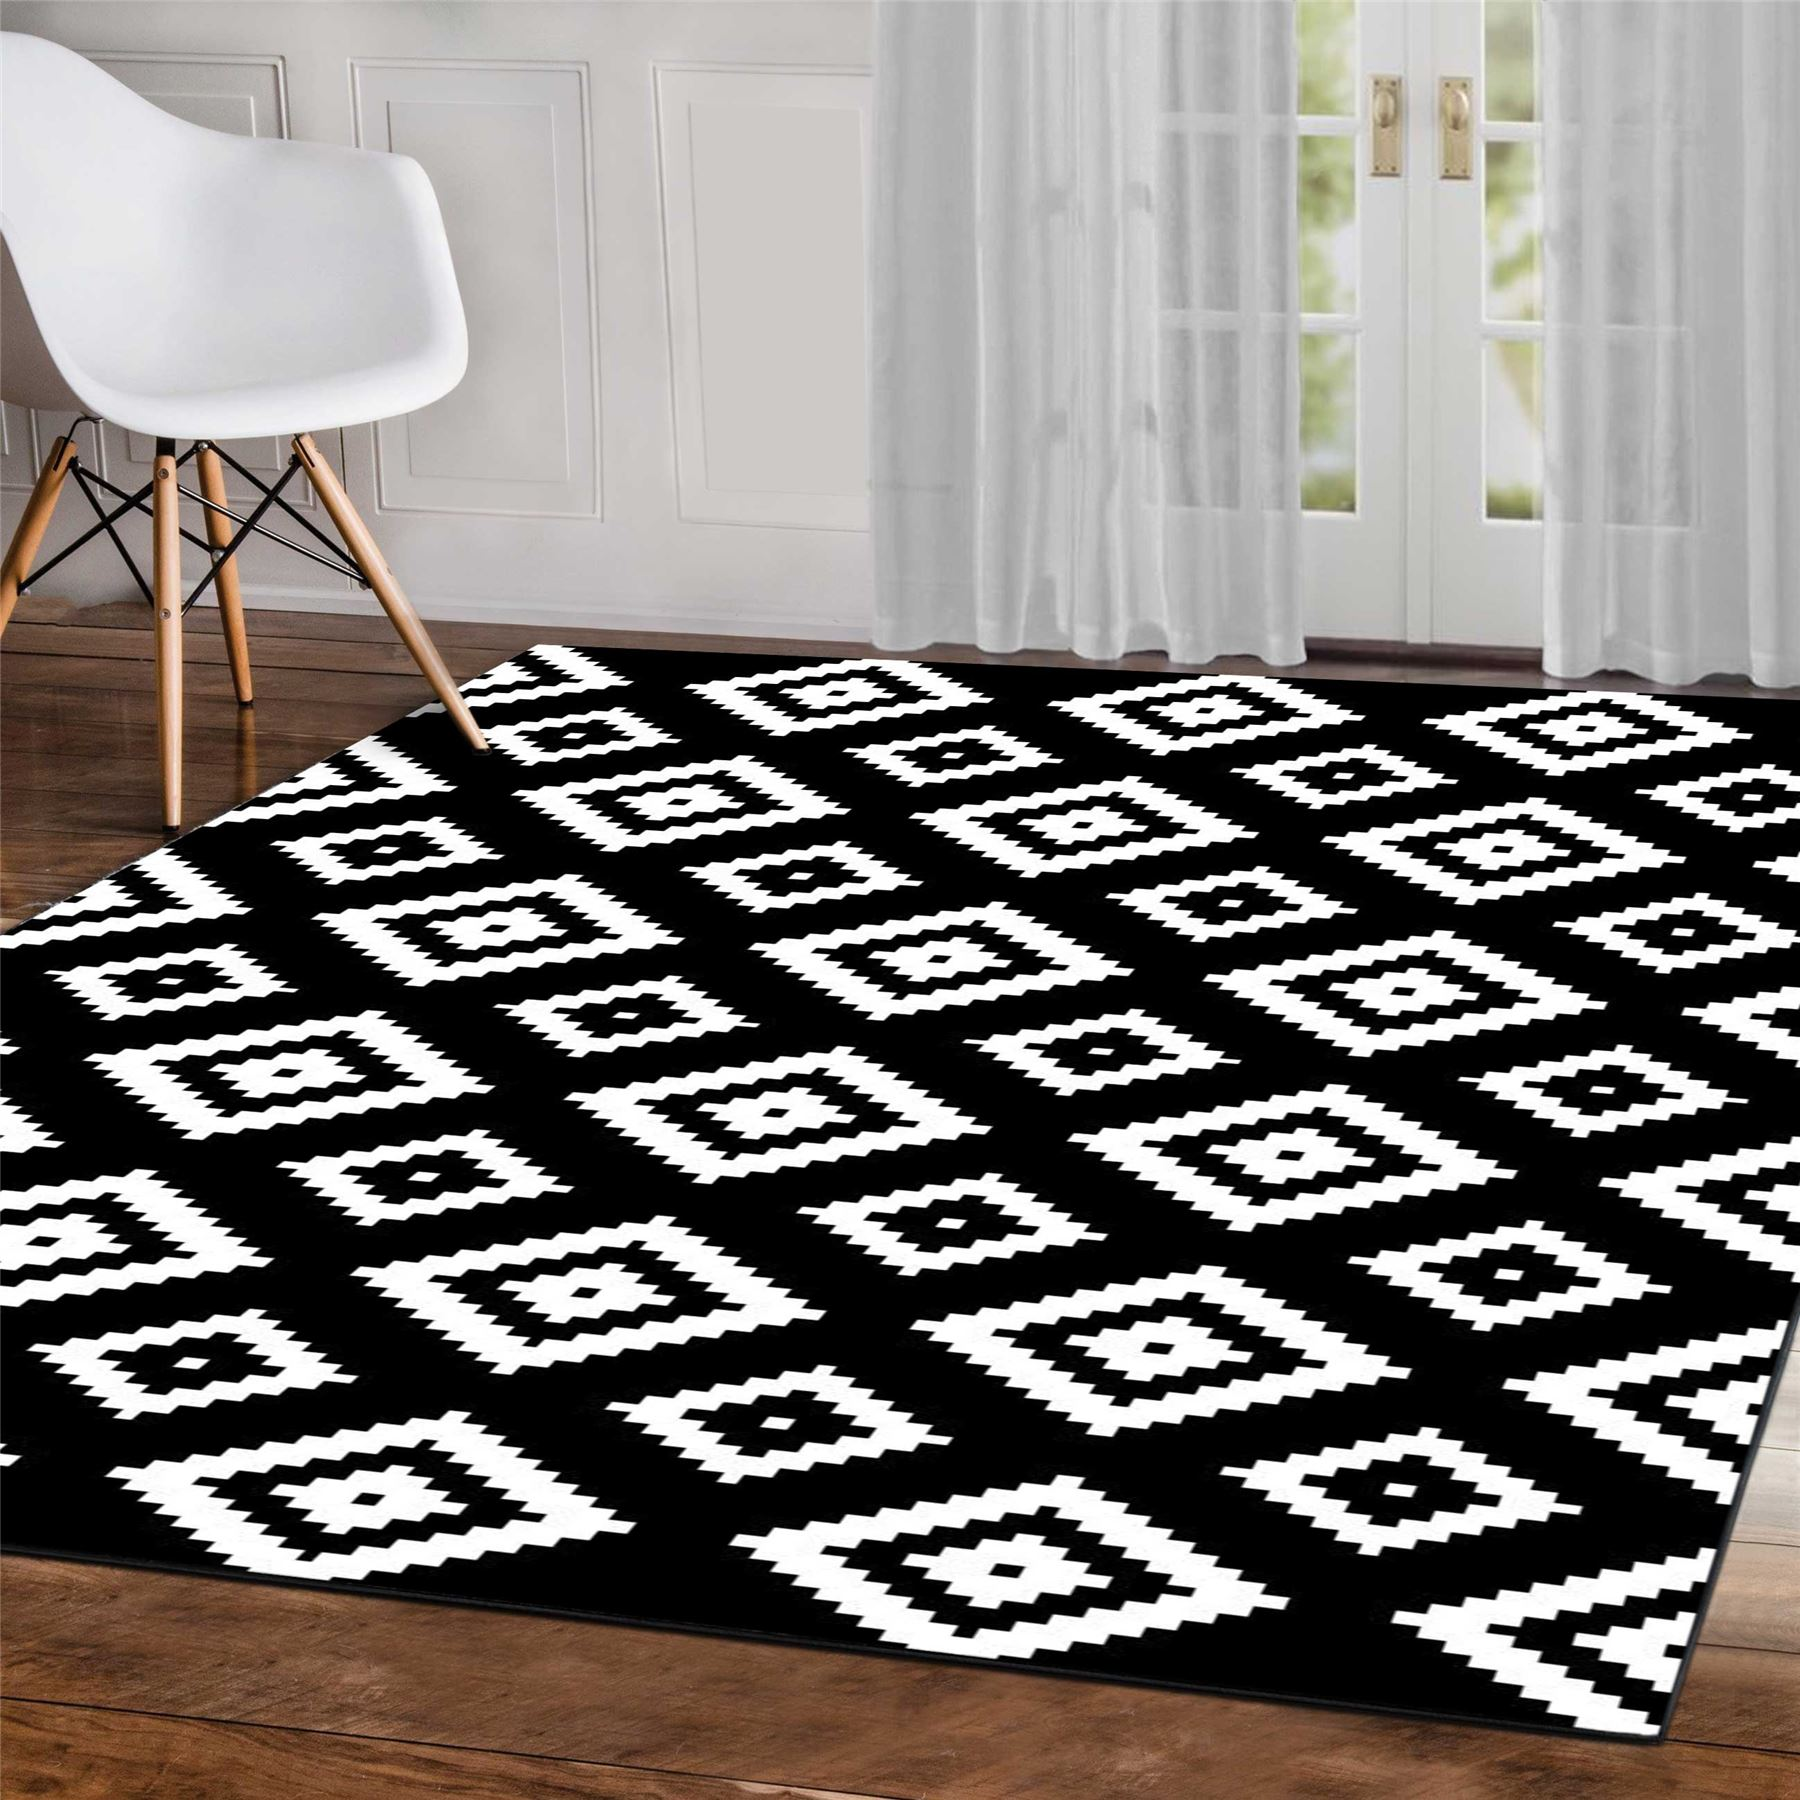 Details About Grey Black White Geometric Modern Bedroom Rugs Aztec Diamond Pattern Area Carpet